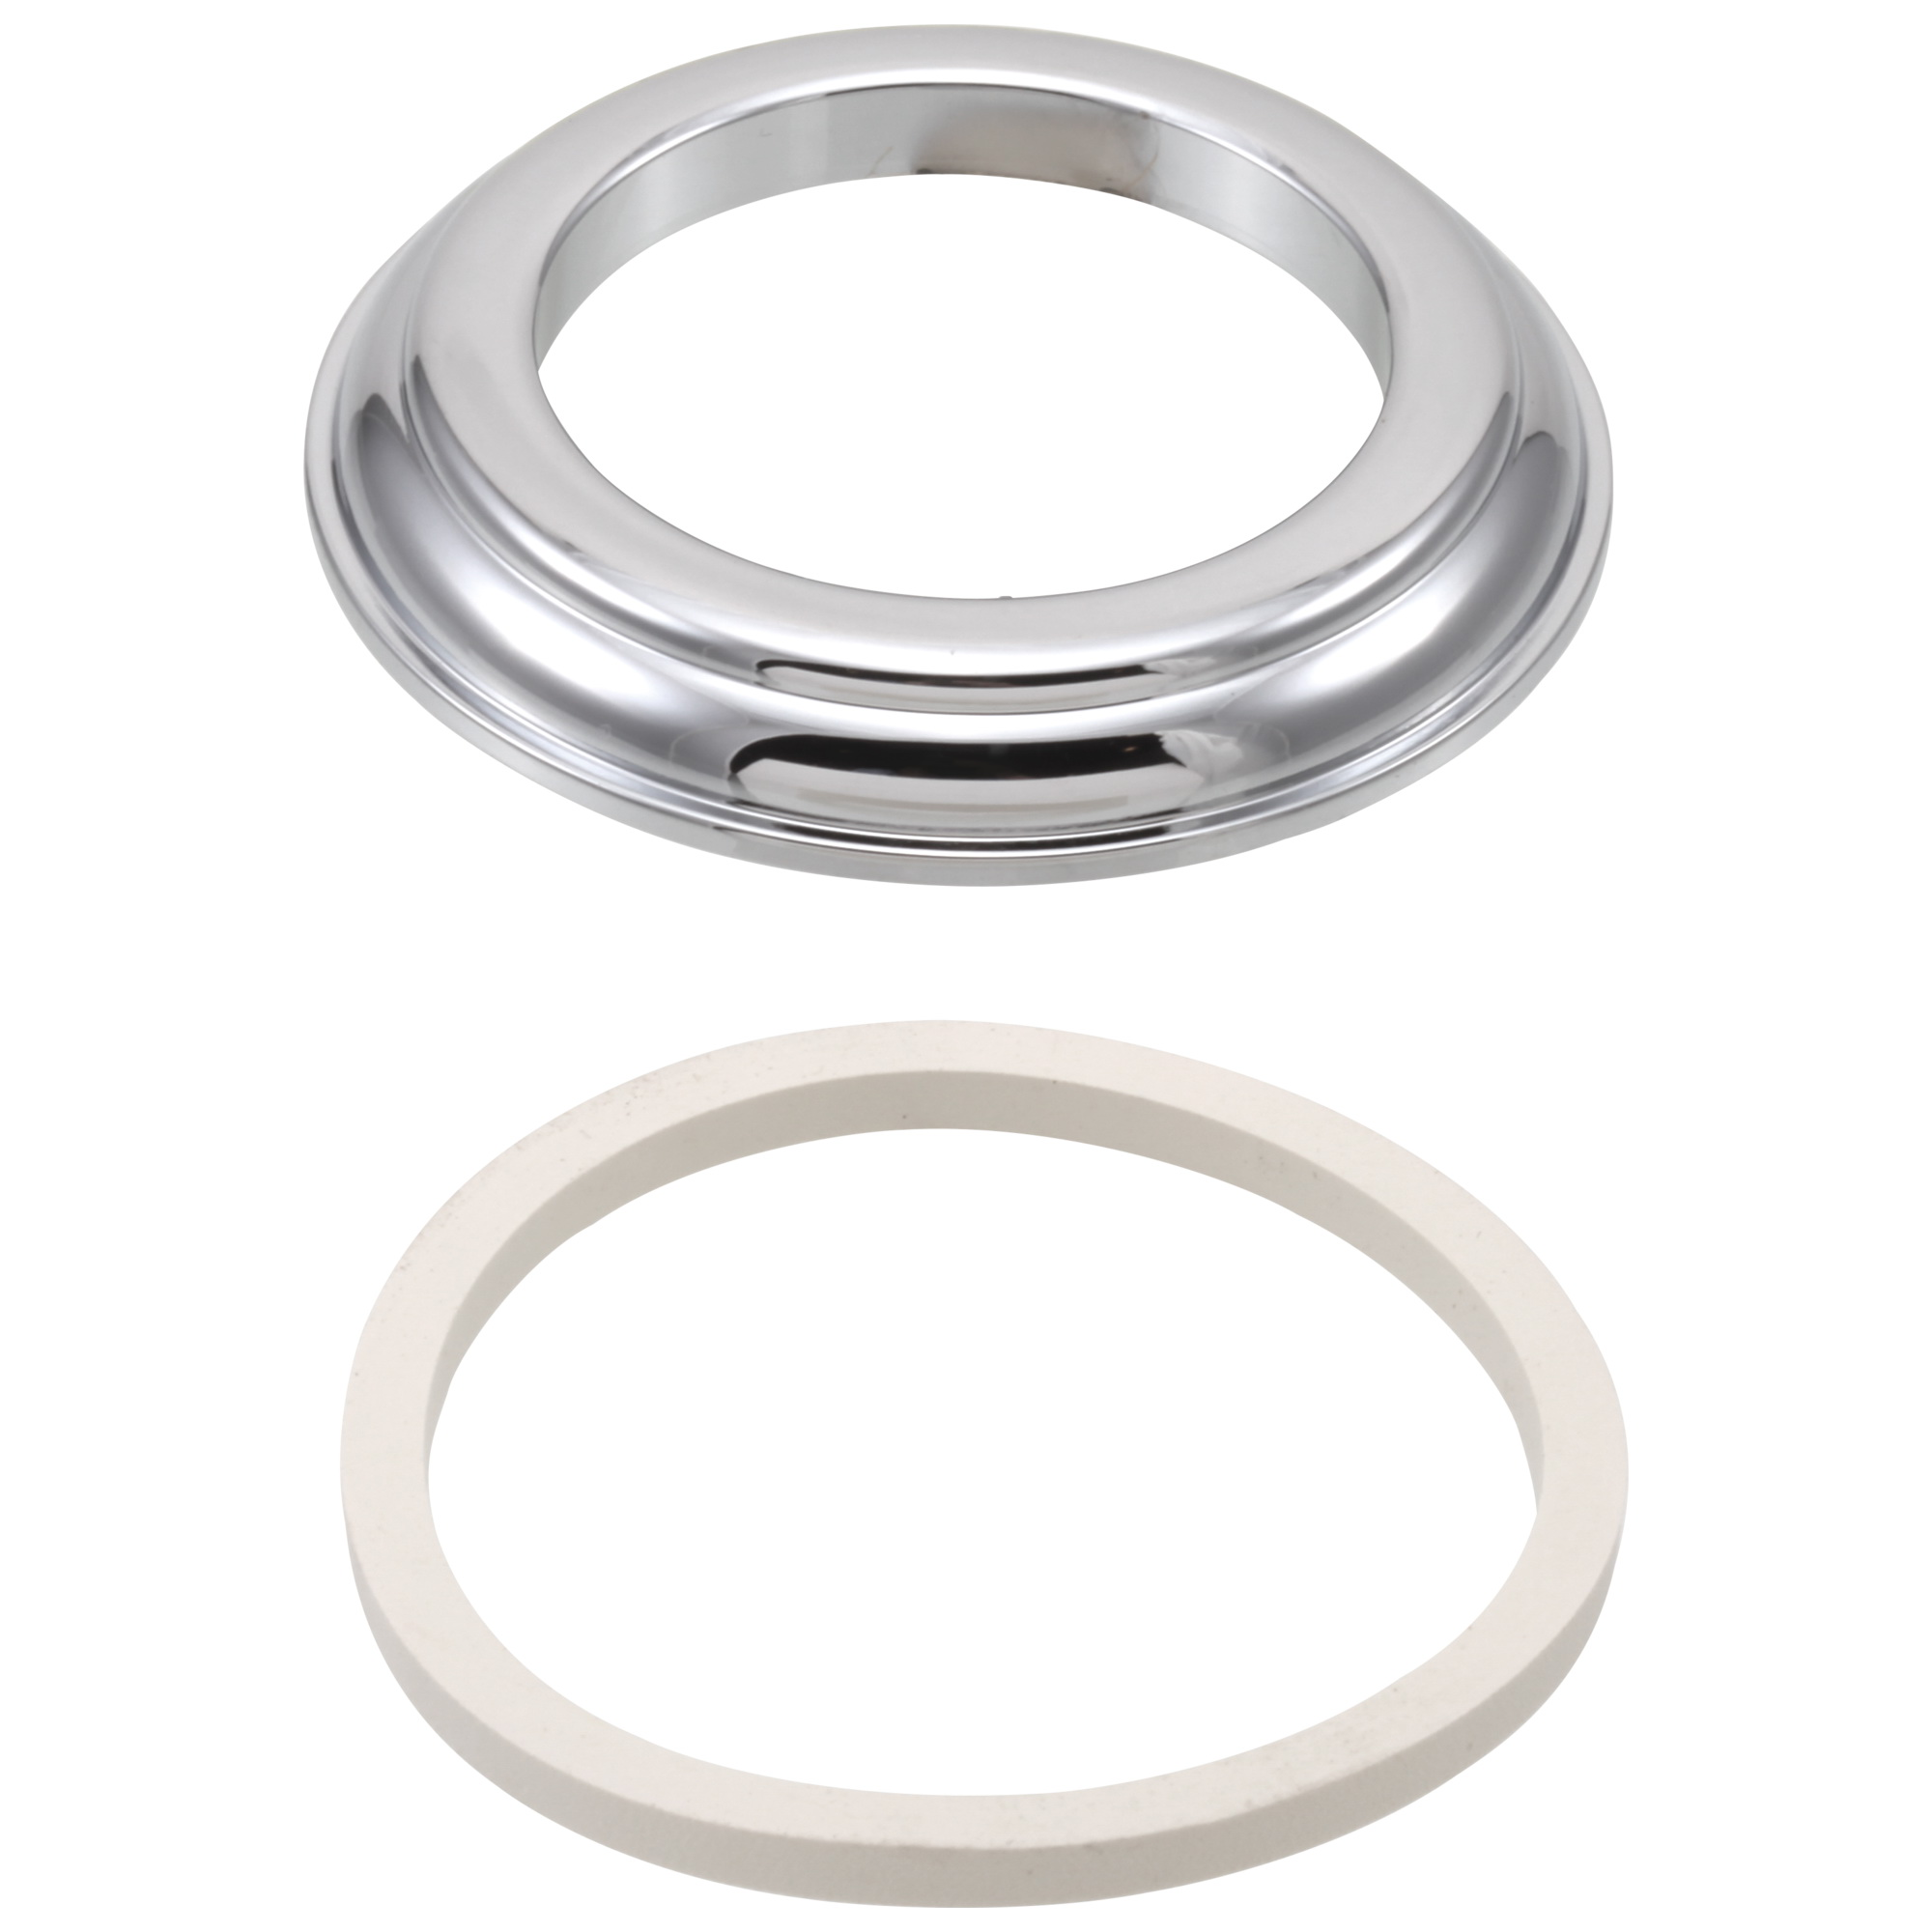 Brizo® RP23611 Base With Gasket, Chrome Plated, Domestic